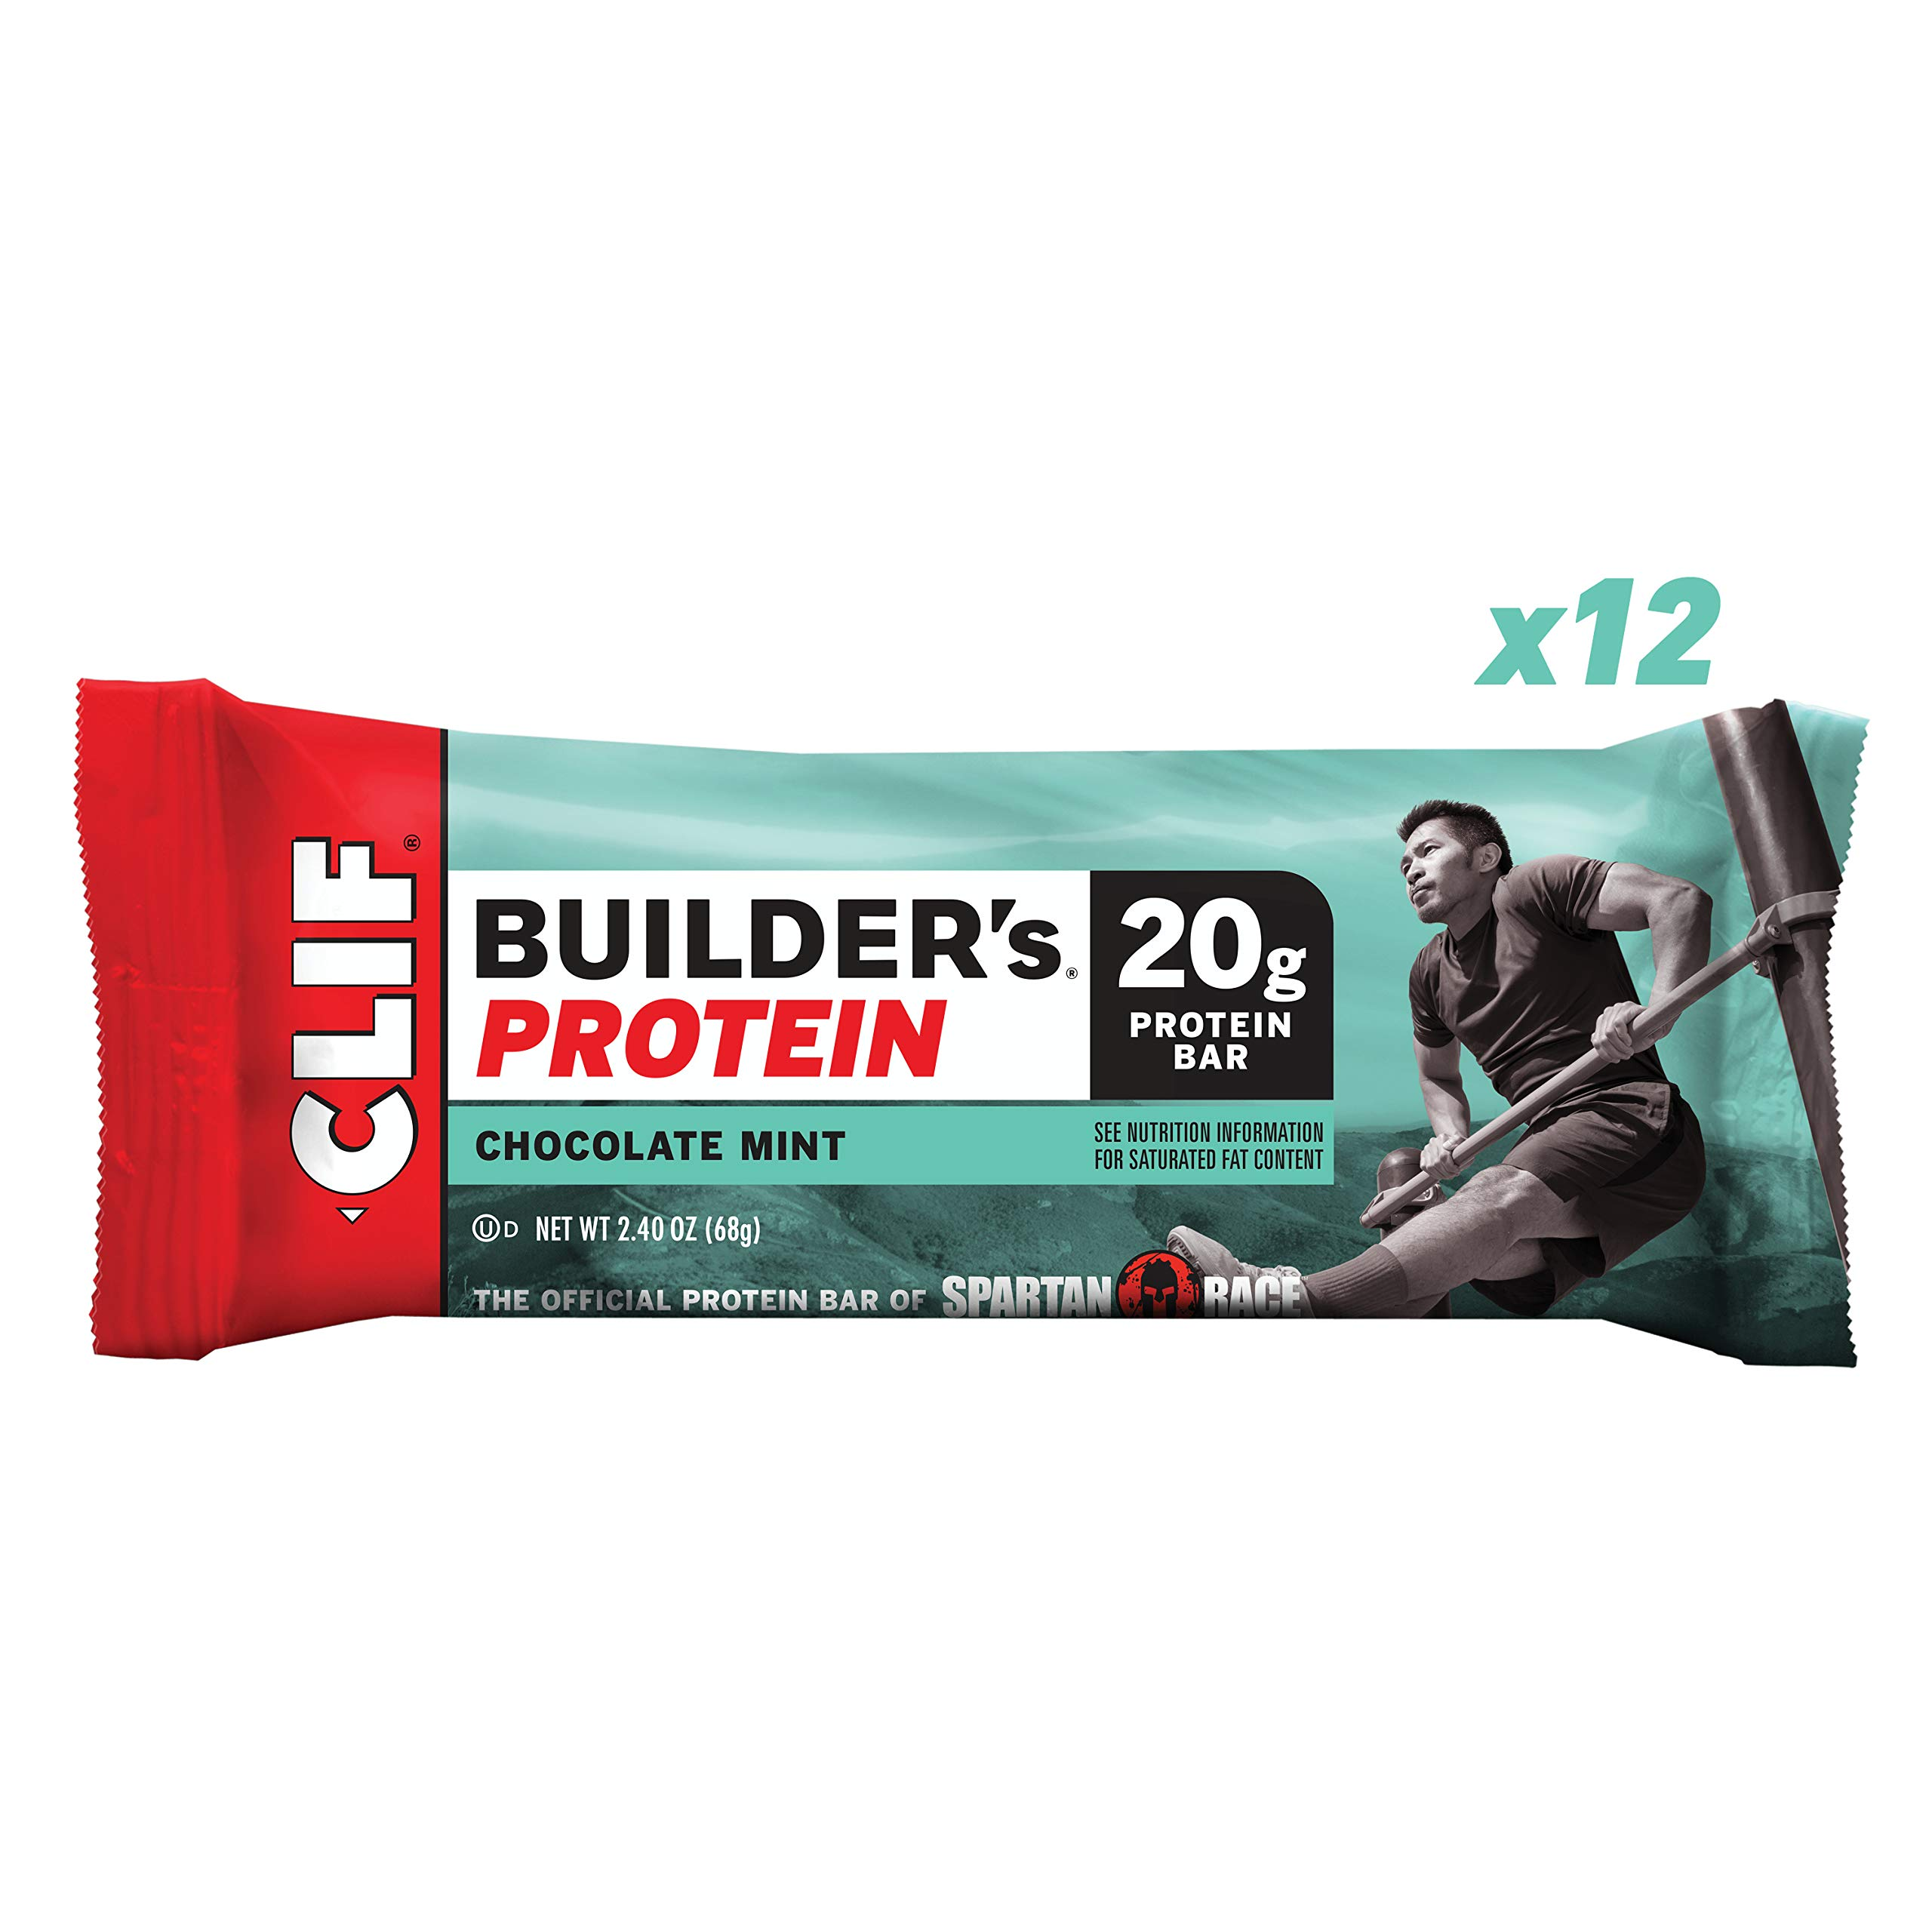 CLIF BUILDER'S - Protein Bars - Chocolate Mint - (2.4 Ounce Non-GMO Bars, 12 Count) by Clif Bar